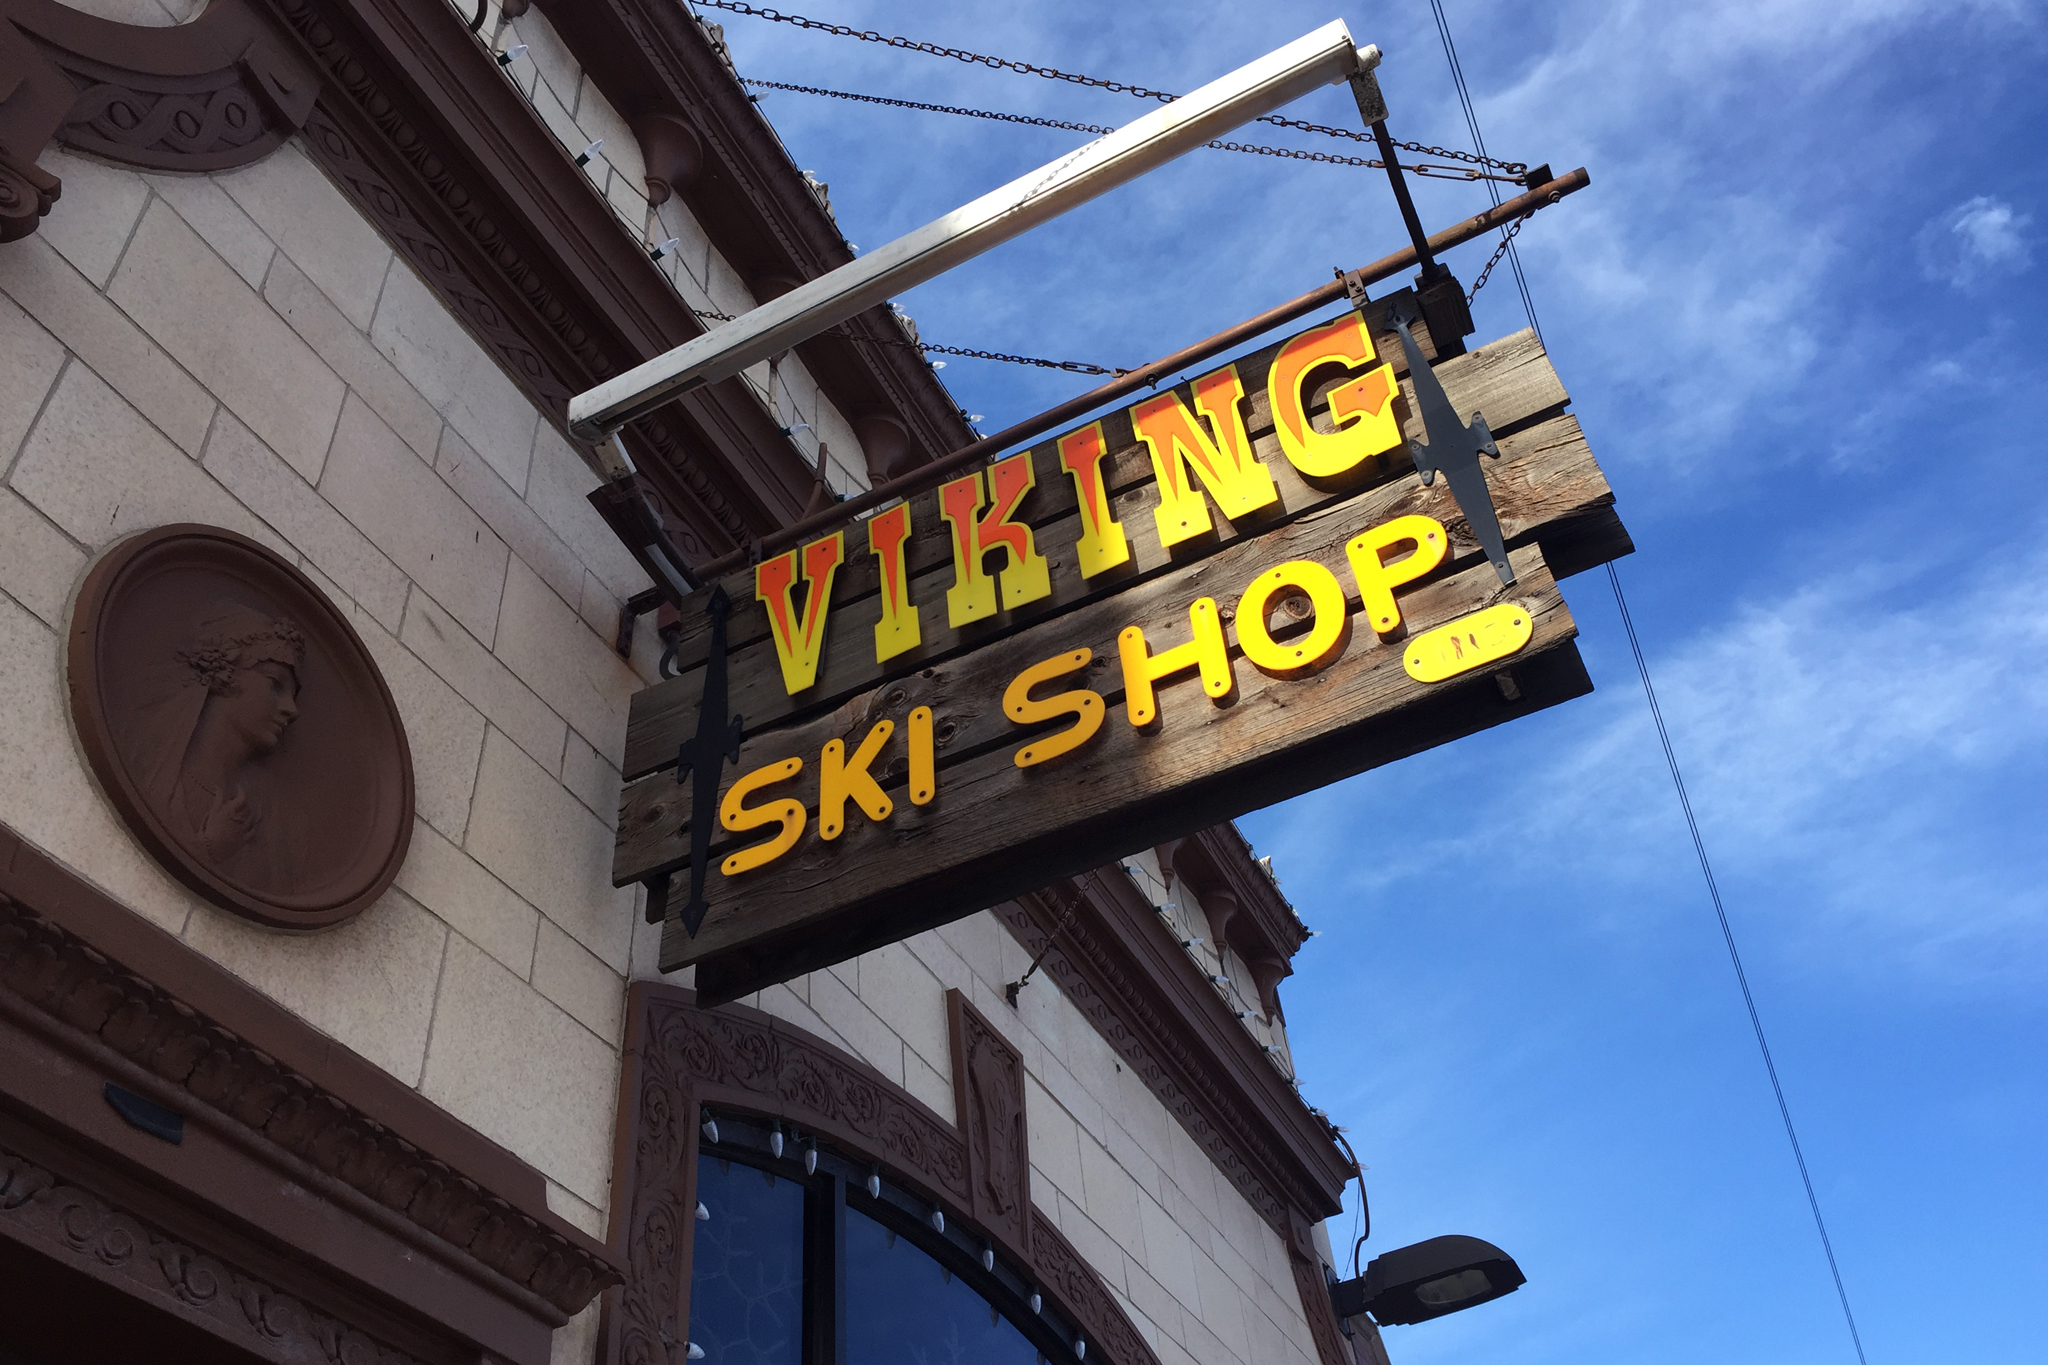 Viking Ski Shop